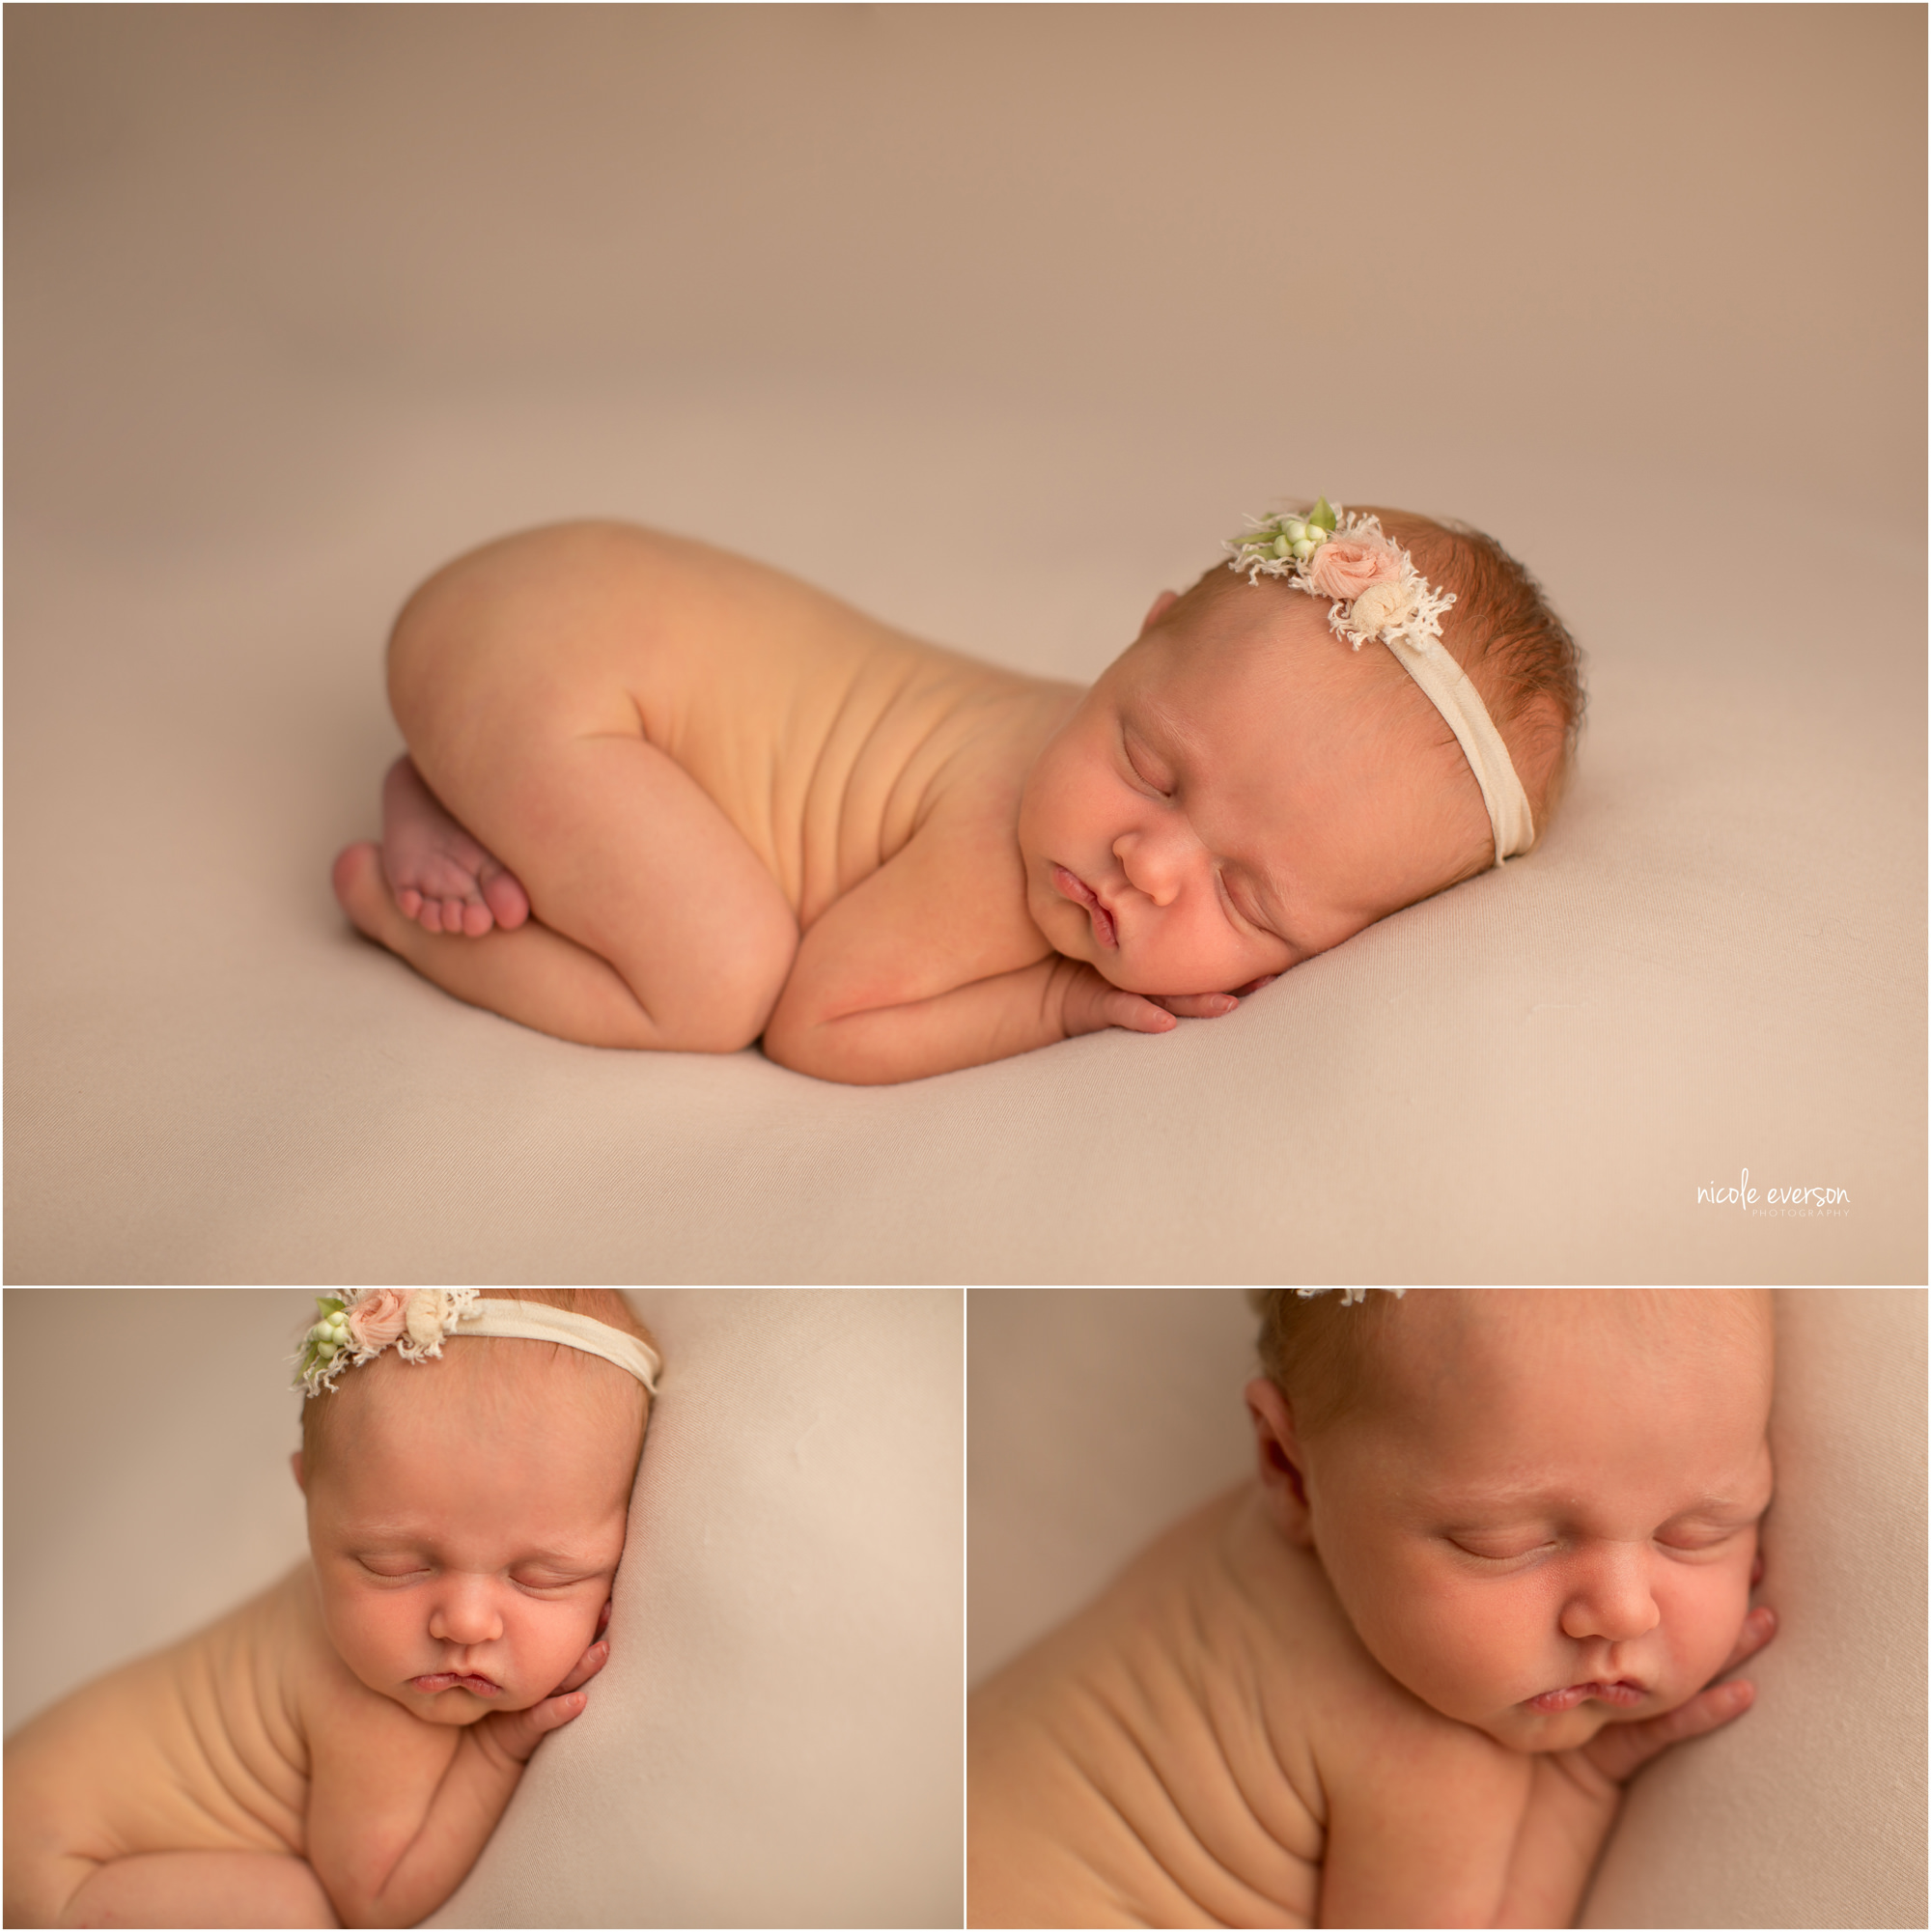 newborn baby girl photographed at Nicole Everson Photography Tallahassee Florida portrait studio